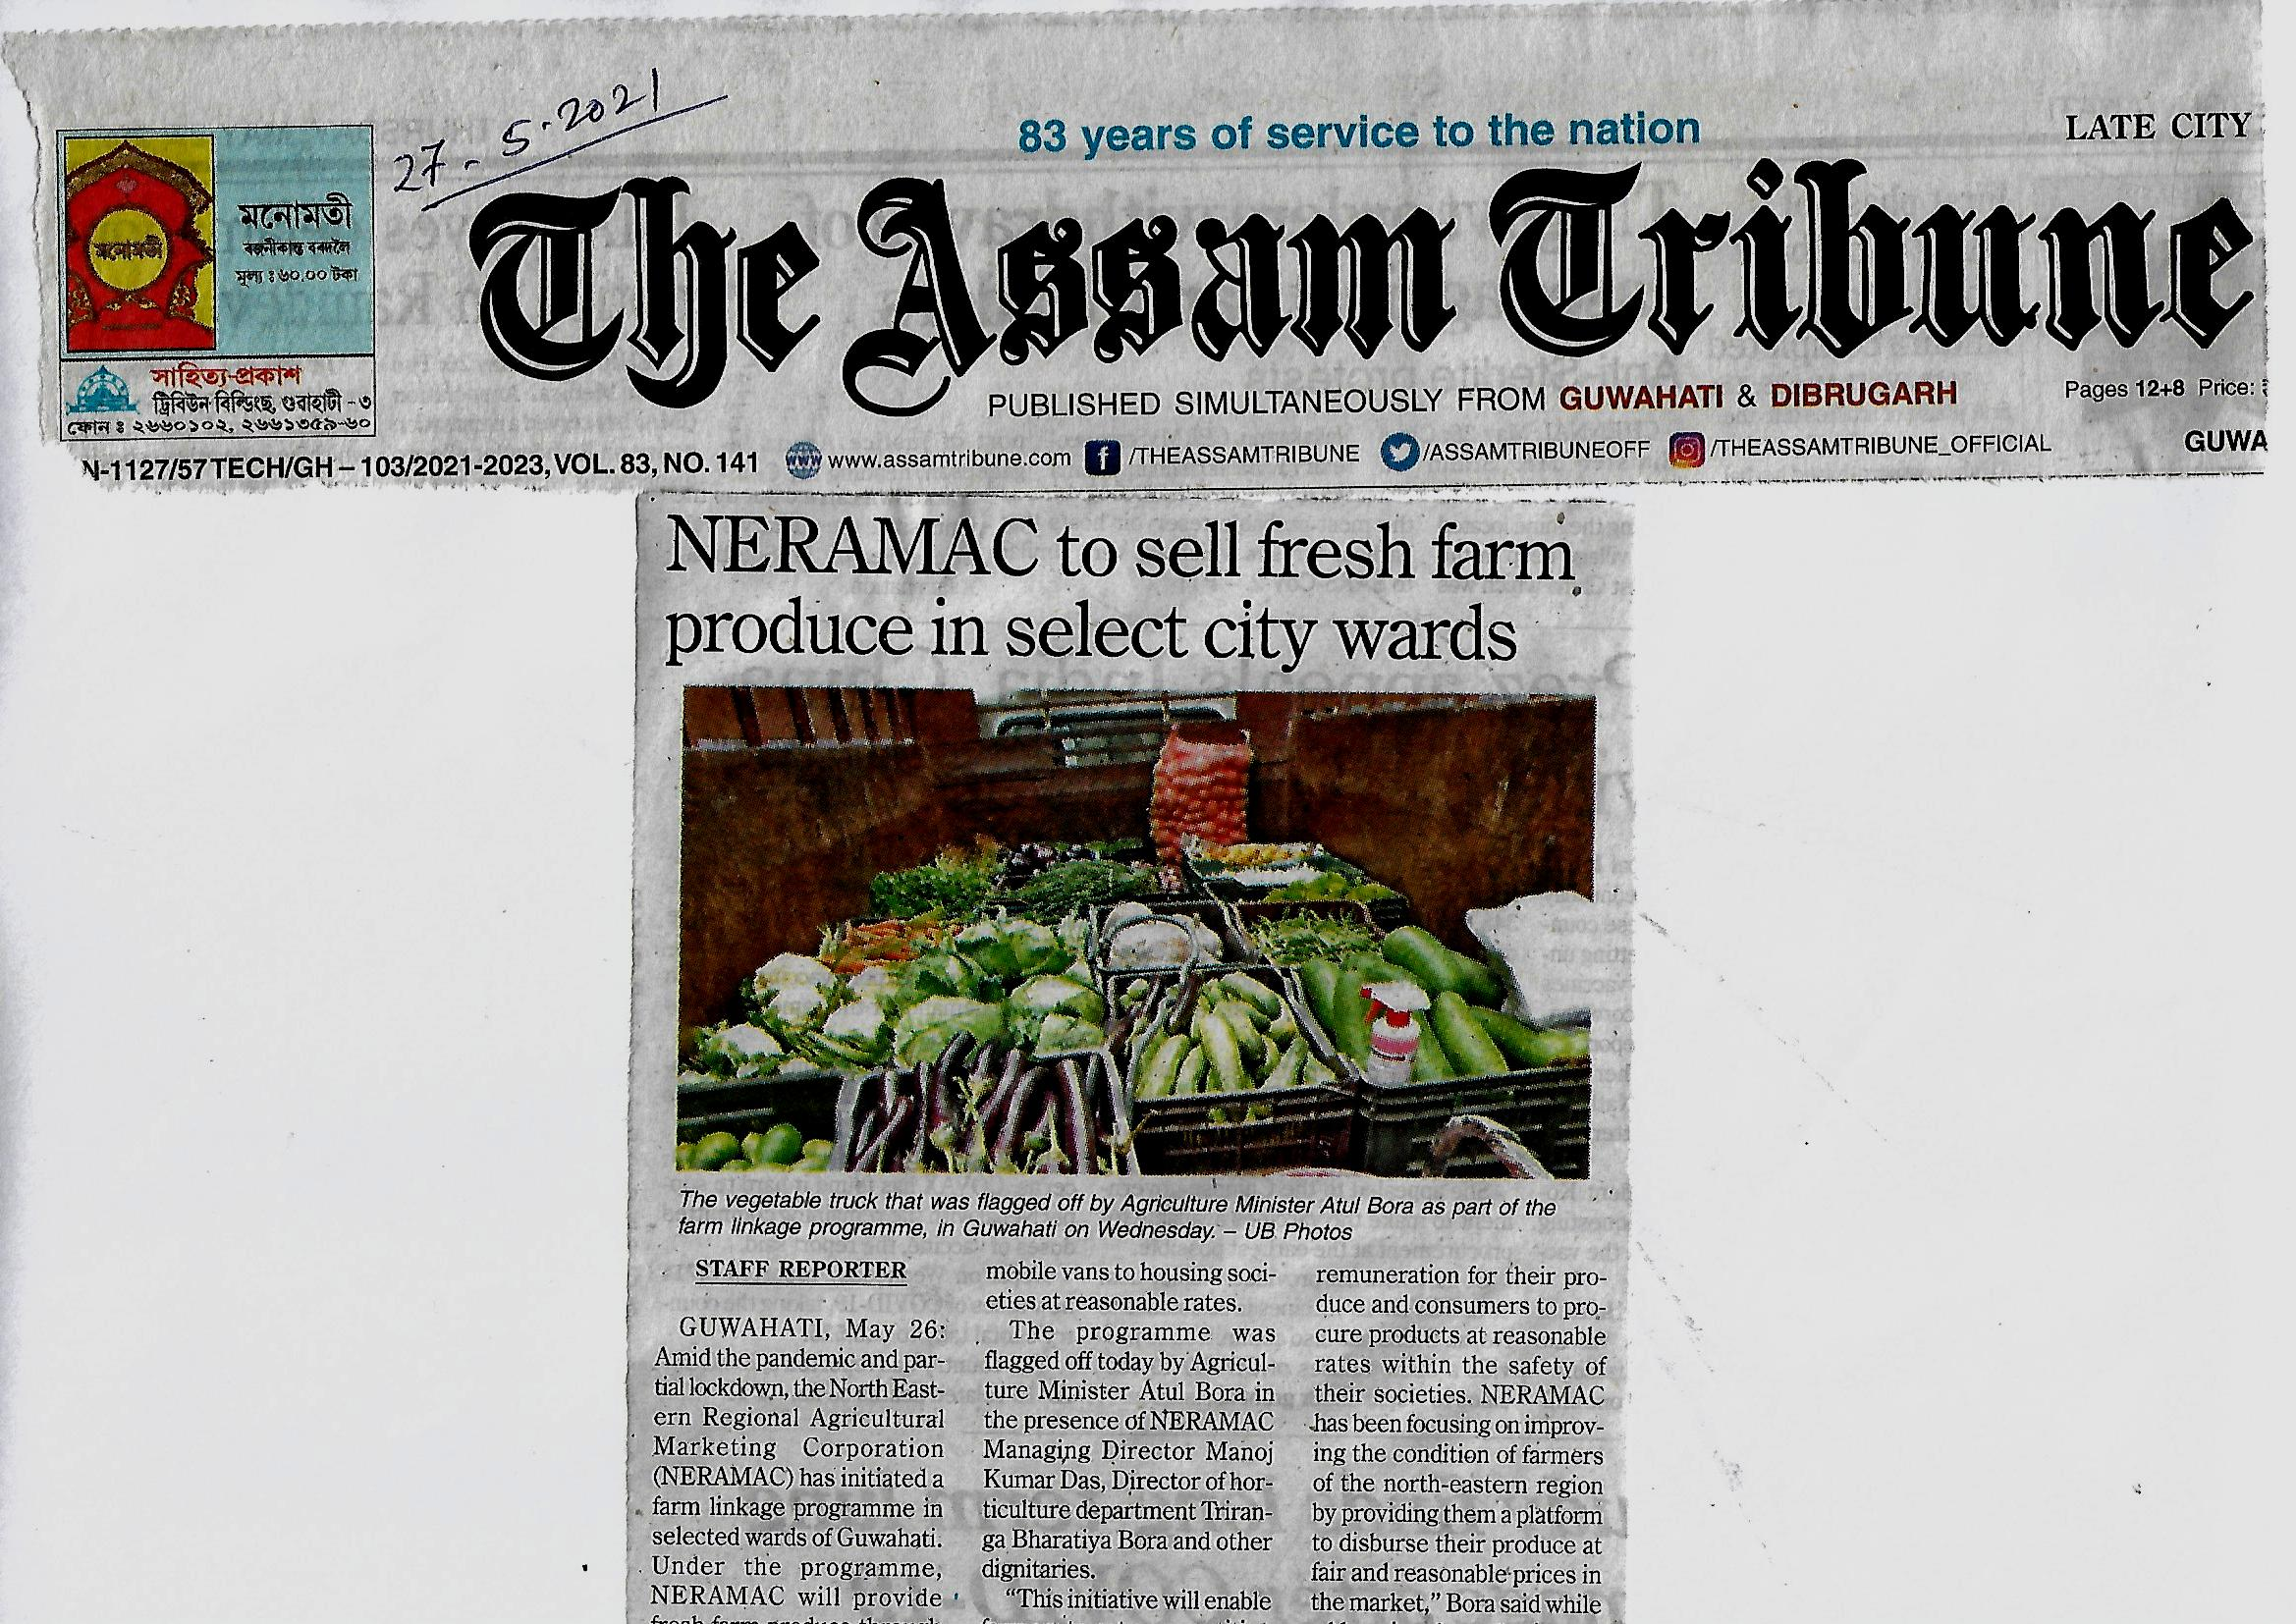 The Assam Tribune 27th May, 2021